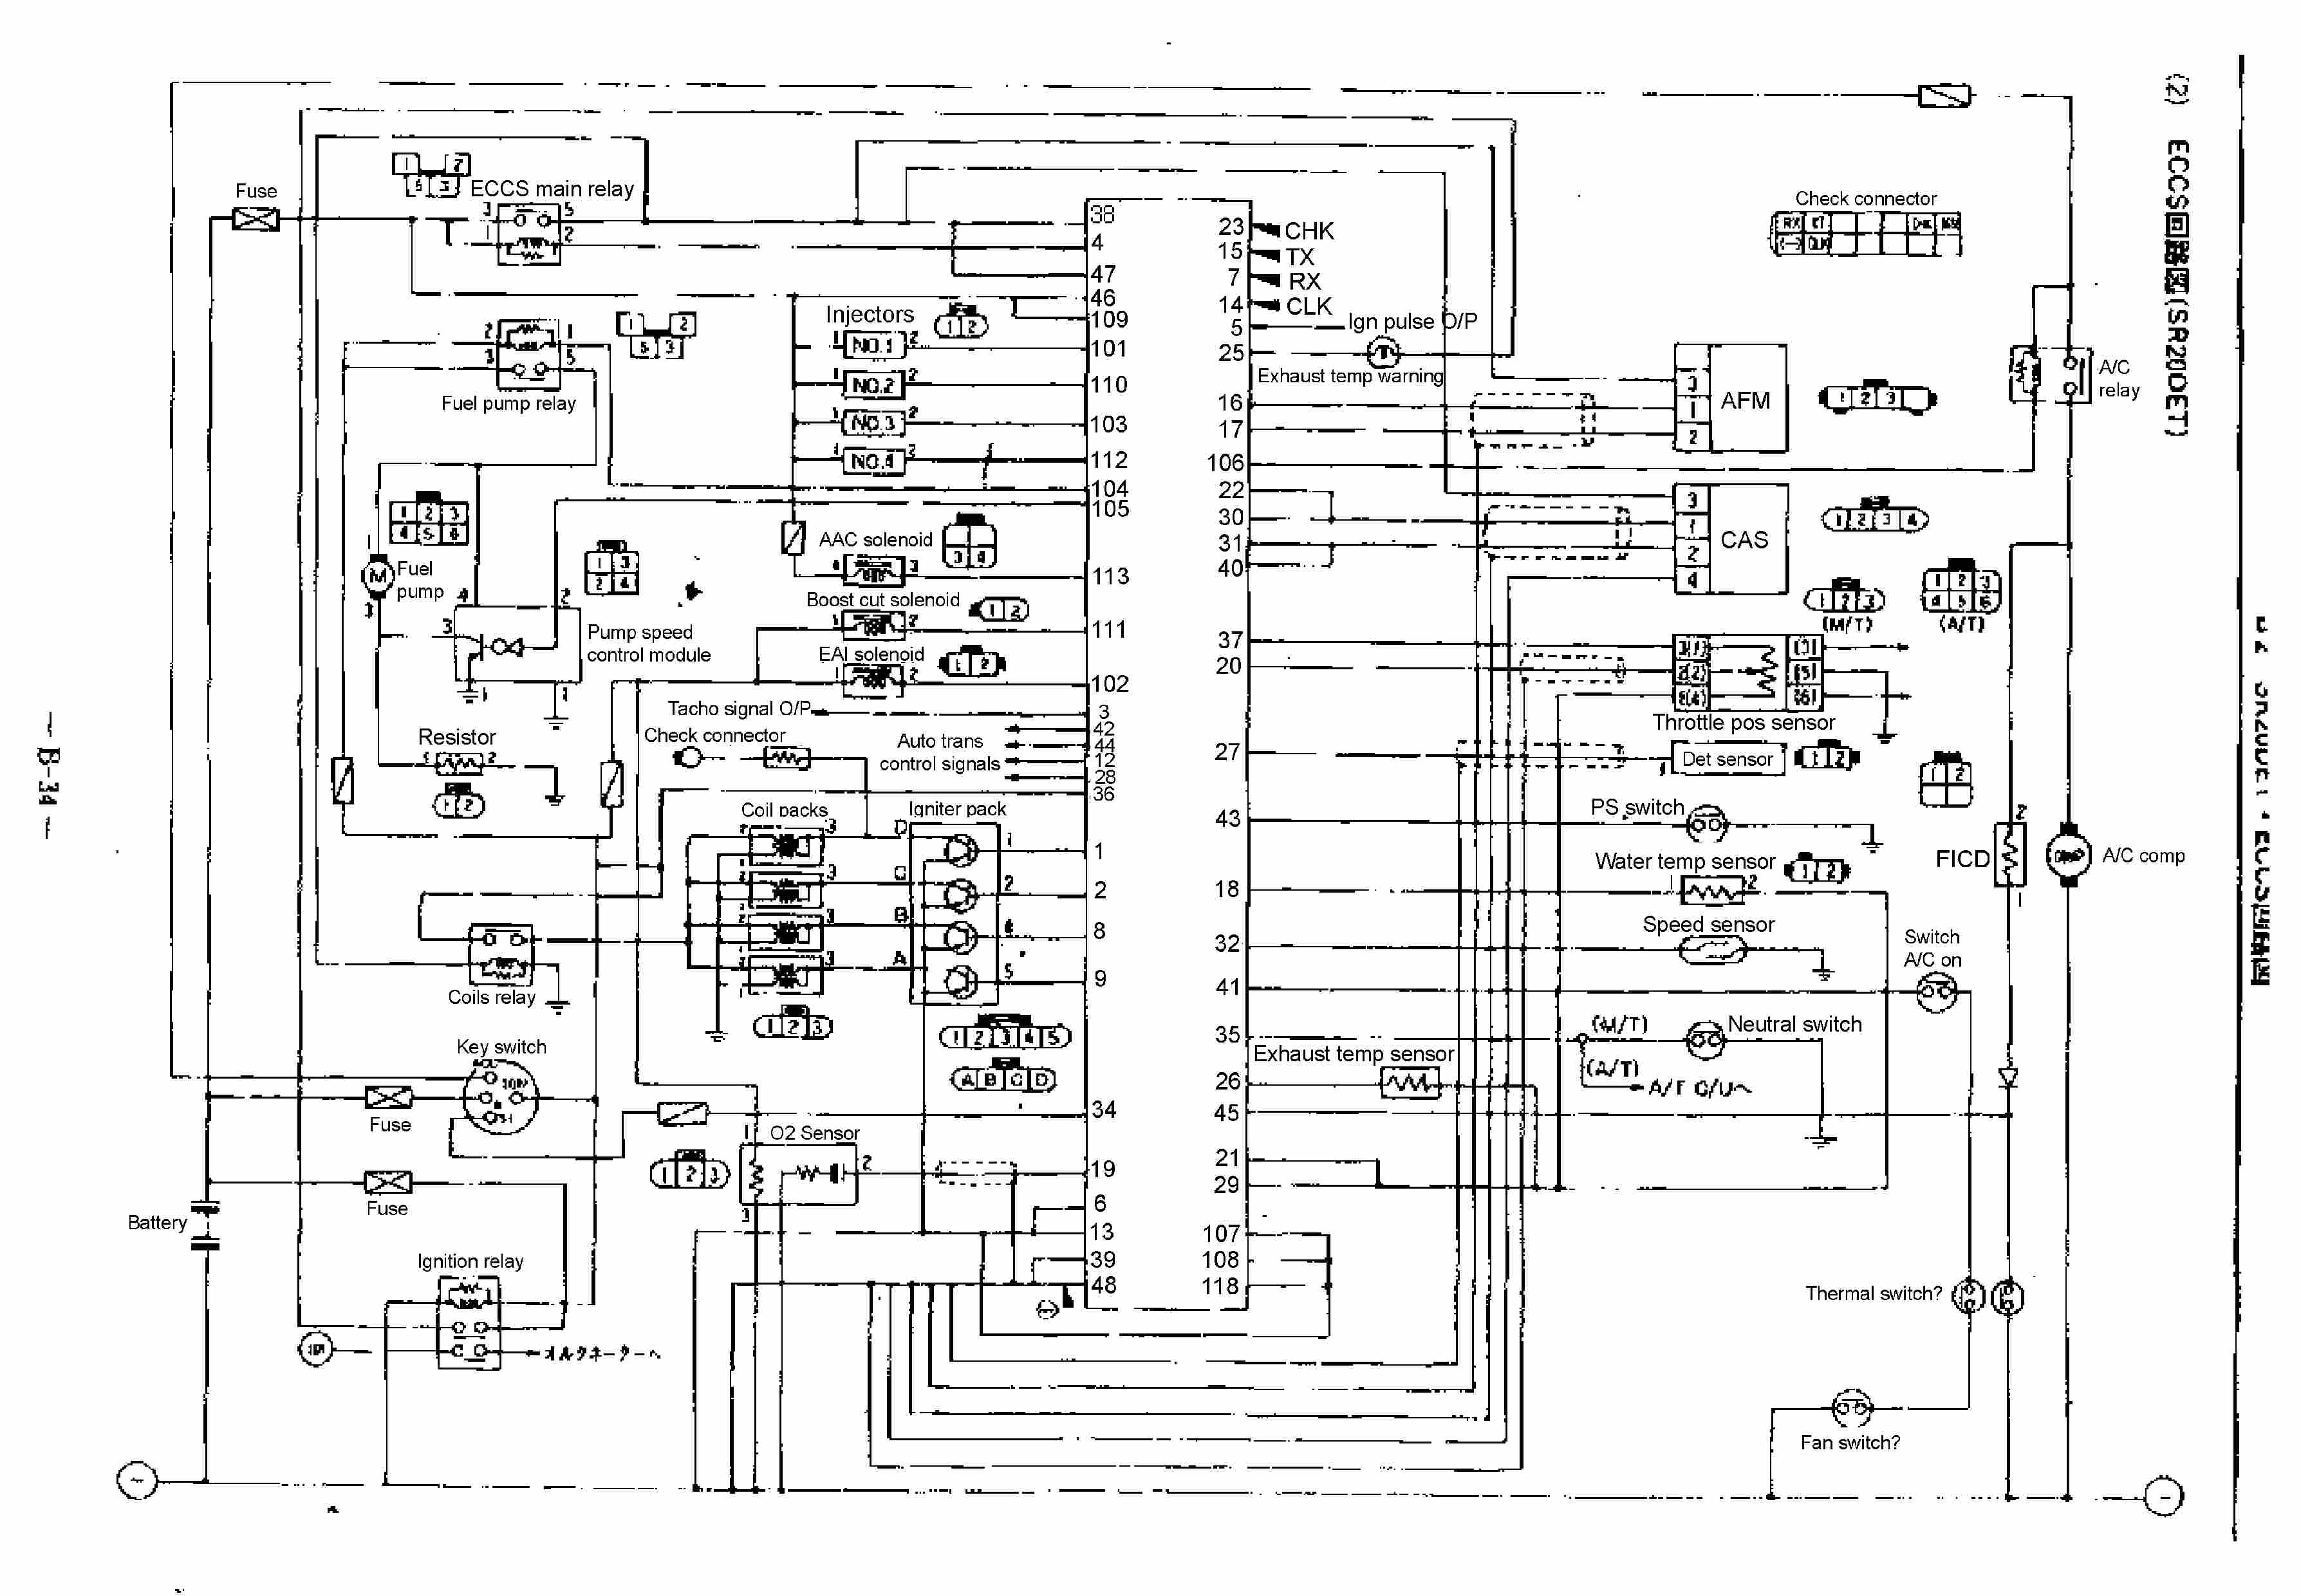 2012 Liberty Fuse Box Simple Guide About Wiring Diagram Jeep Nissan Car Manuals Diagrams Pdf Fault Codes Interior